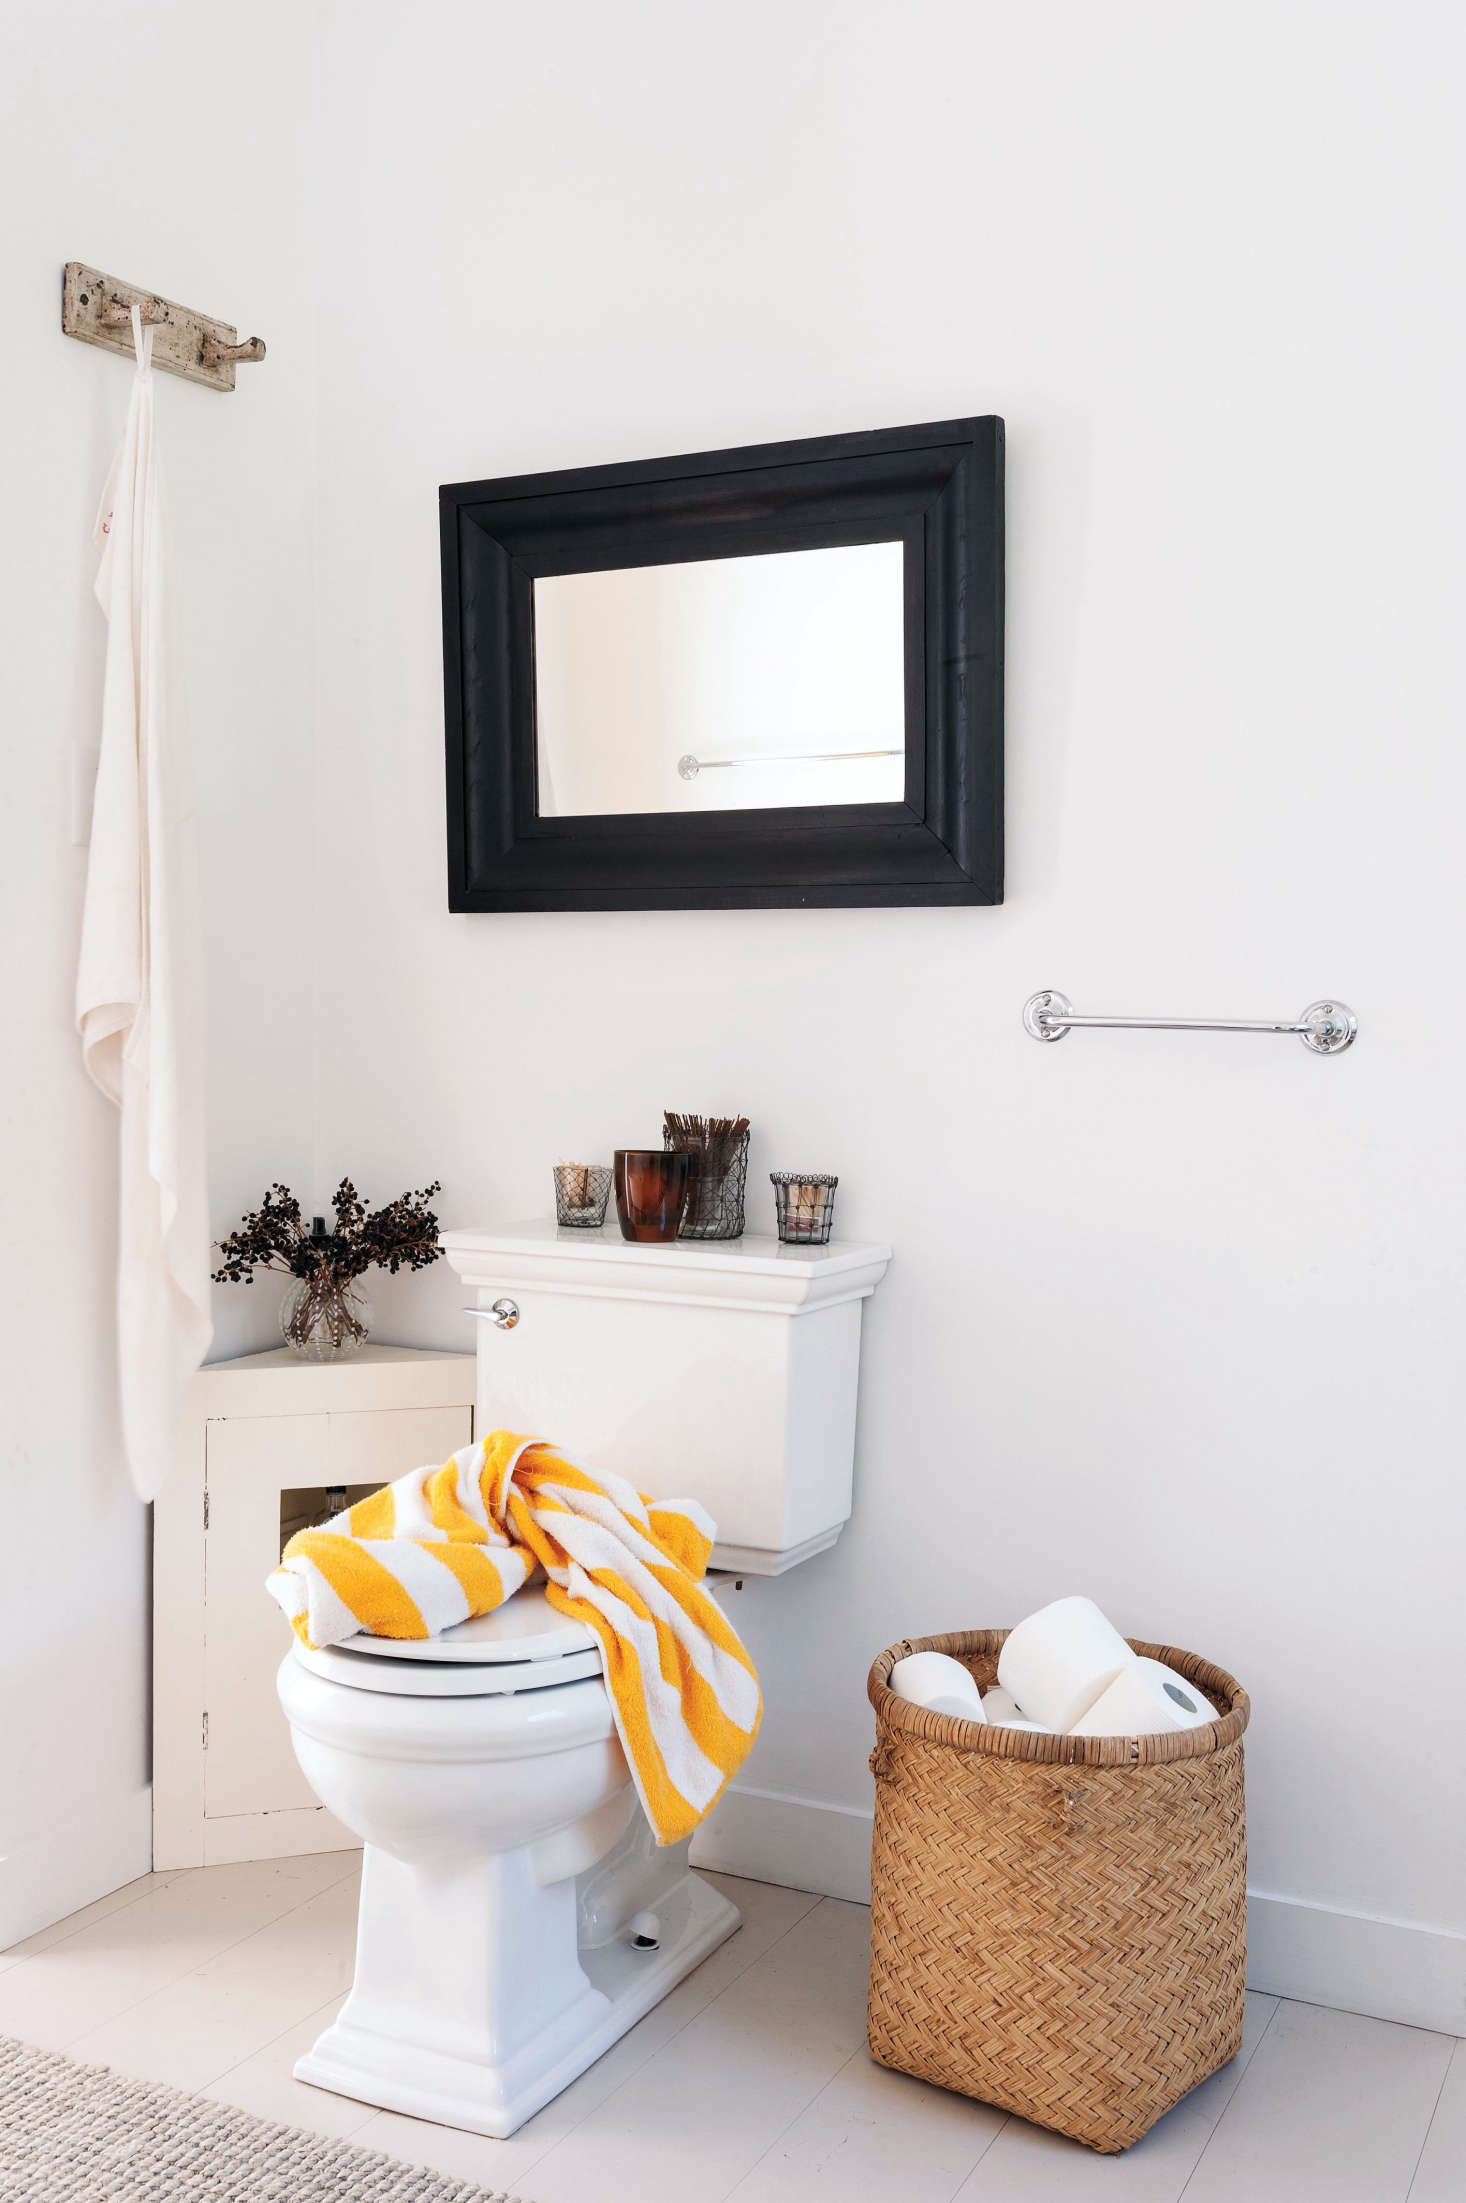 12 Creative (and Easy) DIY Toilet Paper Holders - The Organized Home